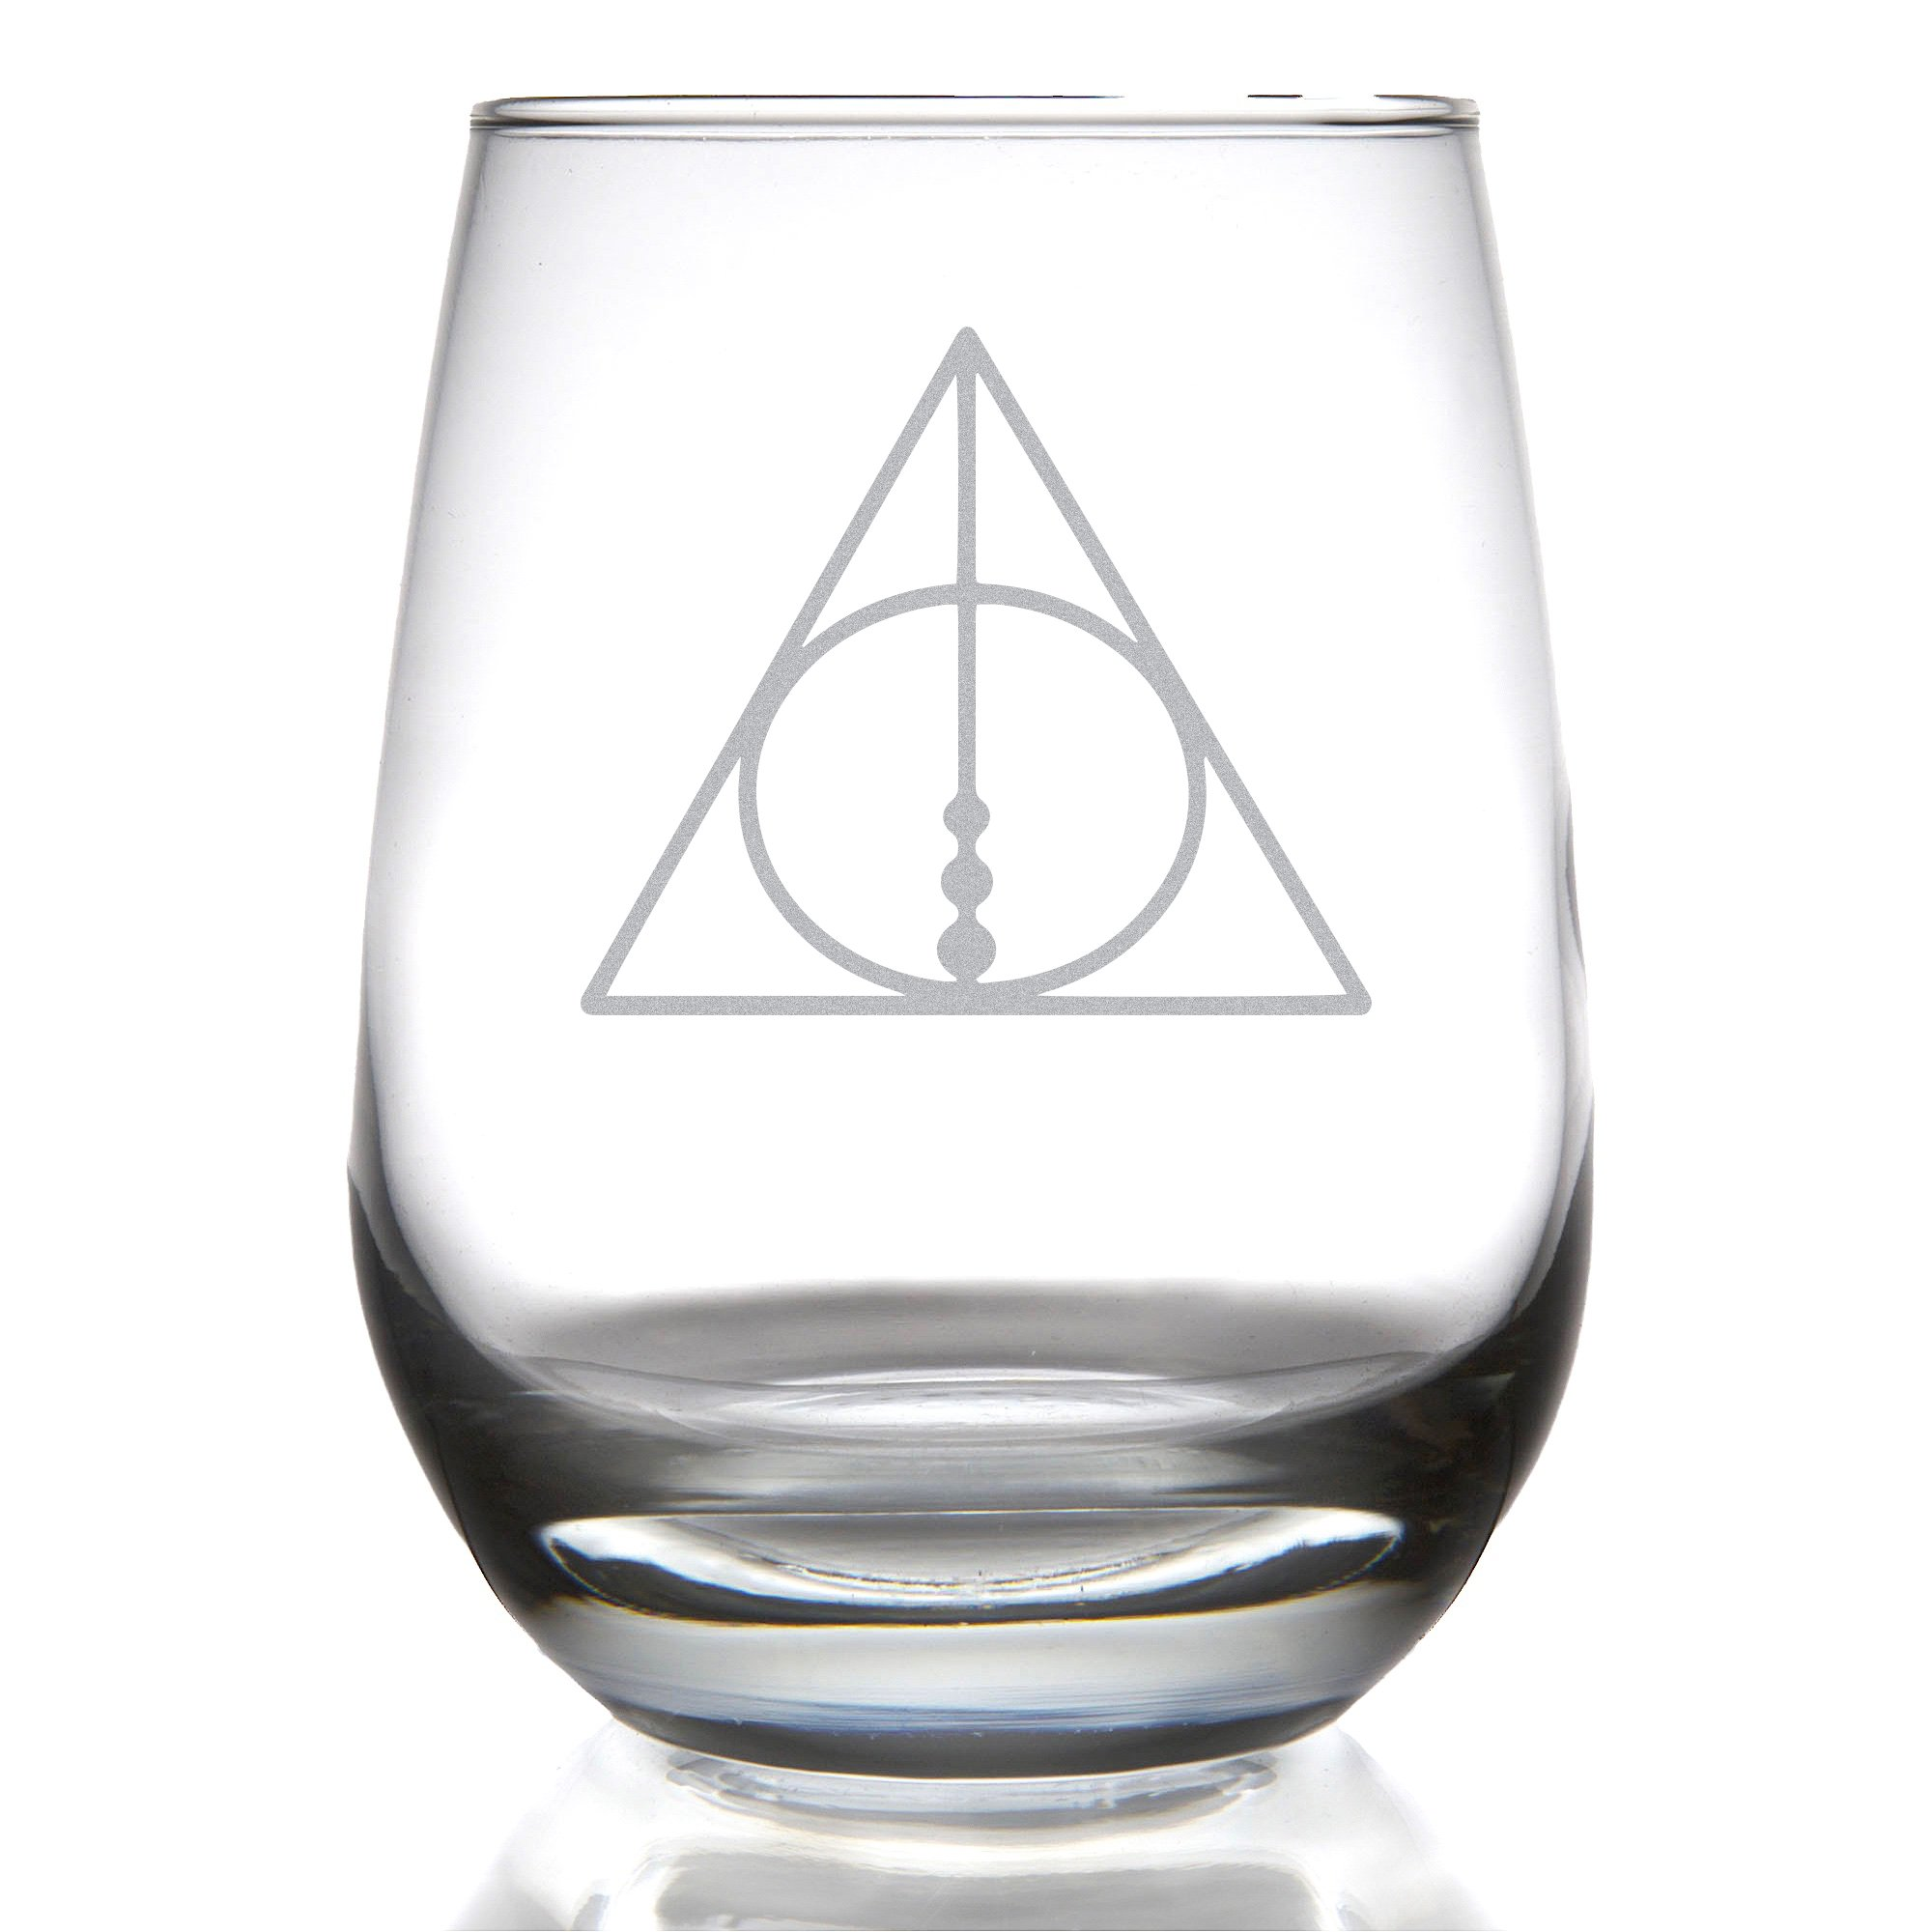 The Deathly Hallows Stemless Wine Glass